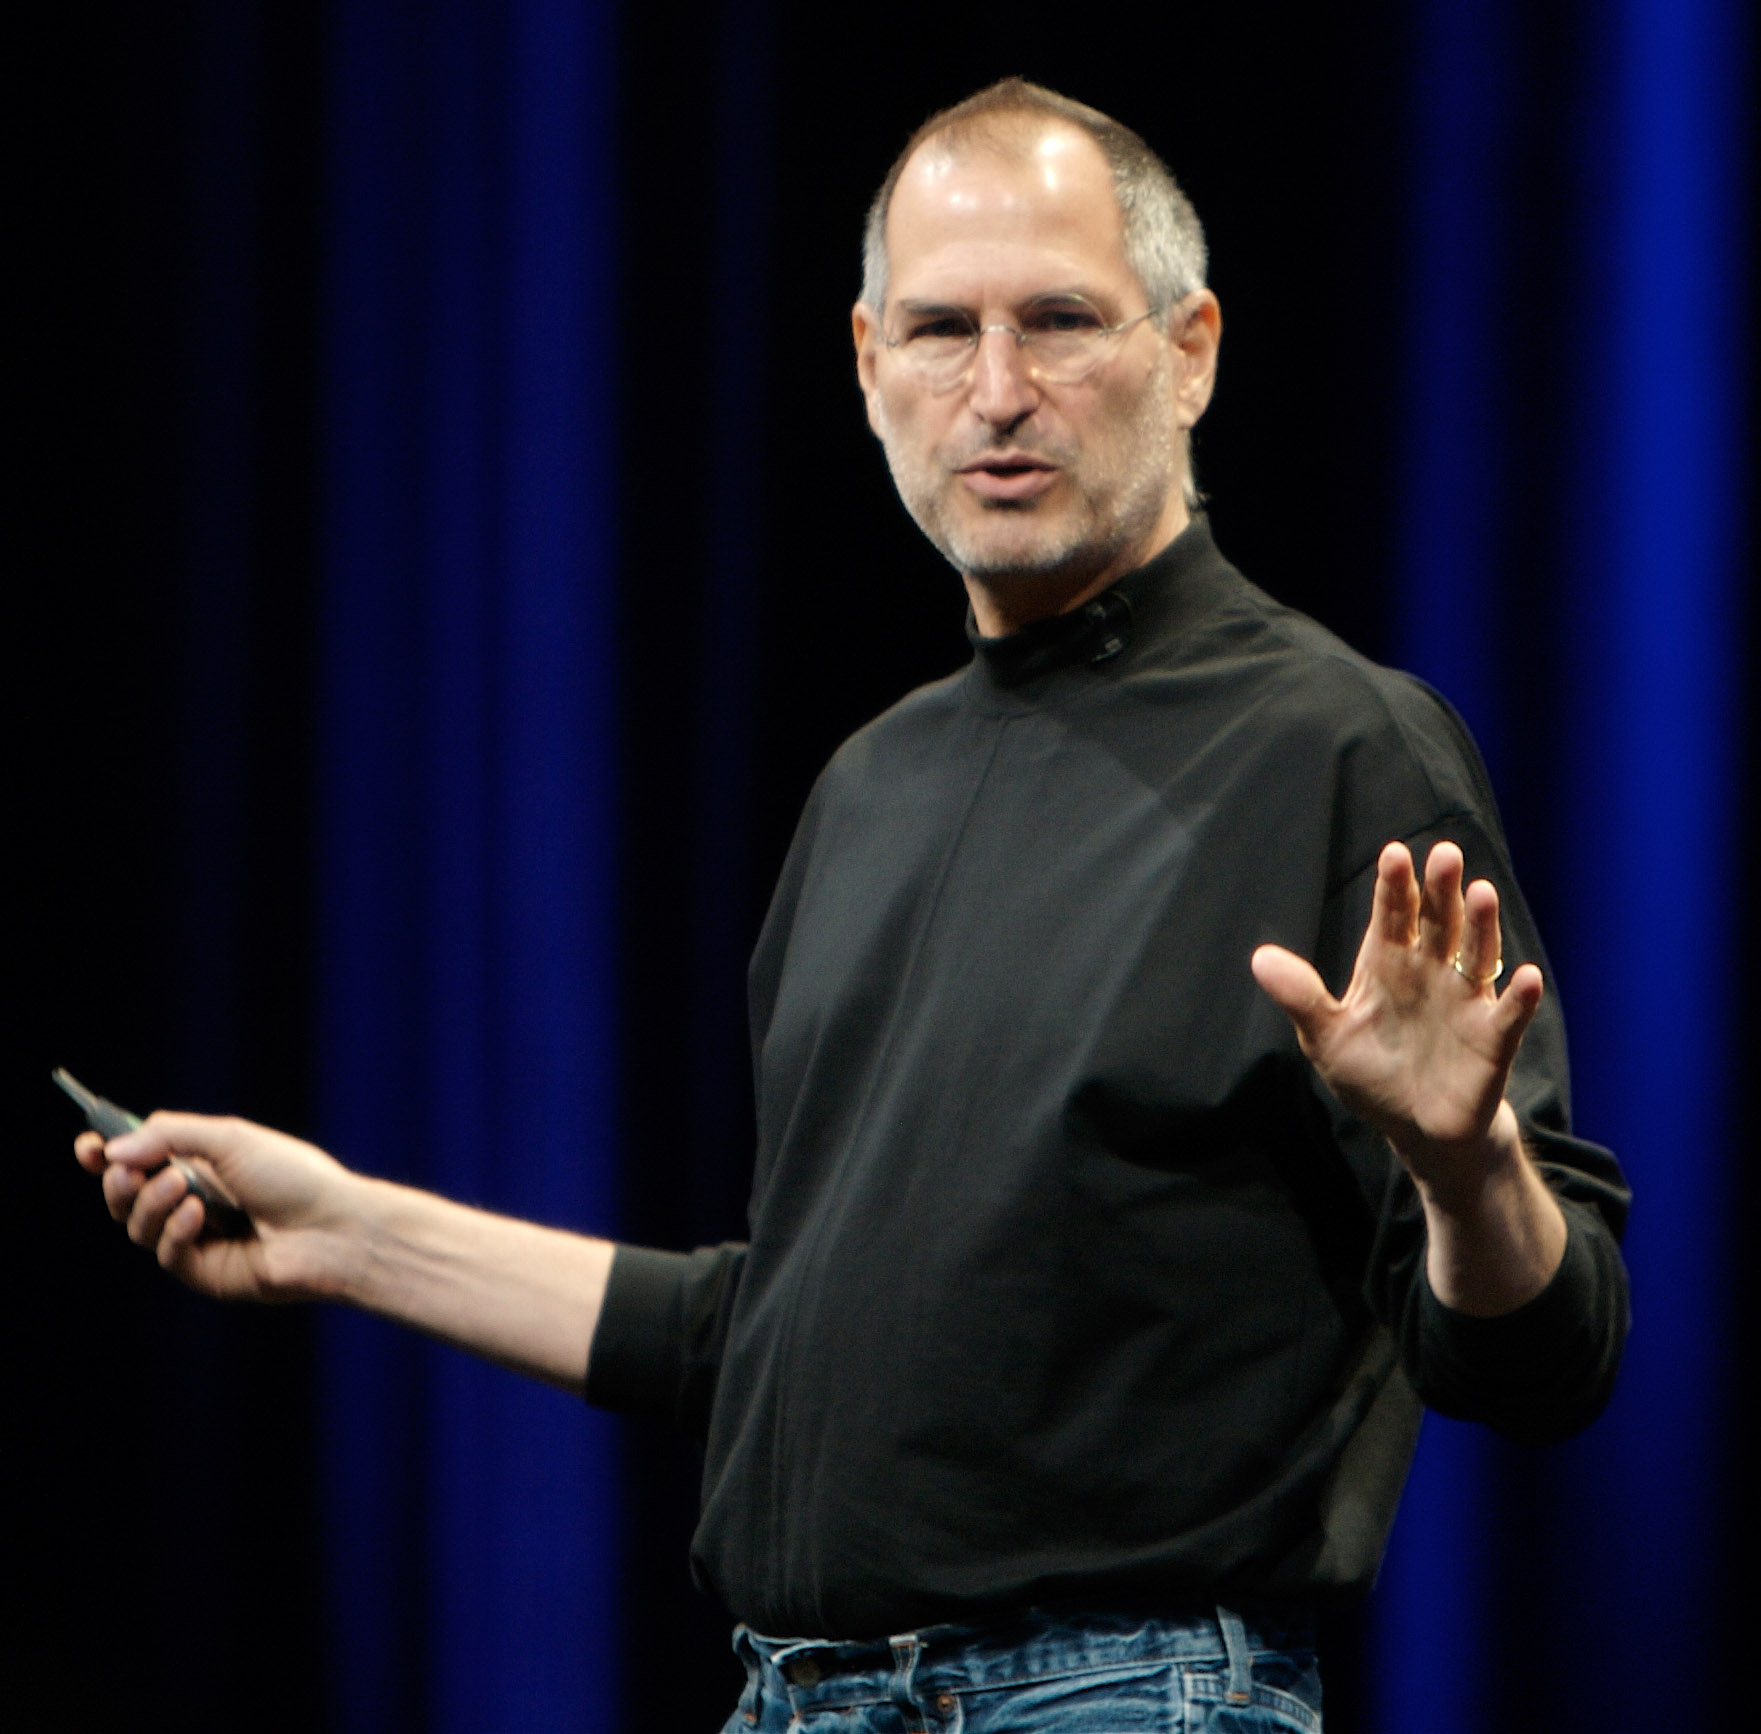 https://upload.wikimedia.org/wikipedia/commons/e/e5/Steve_Jobs_WWDC07.jpg